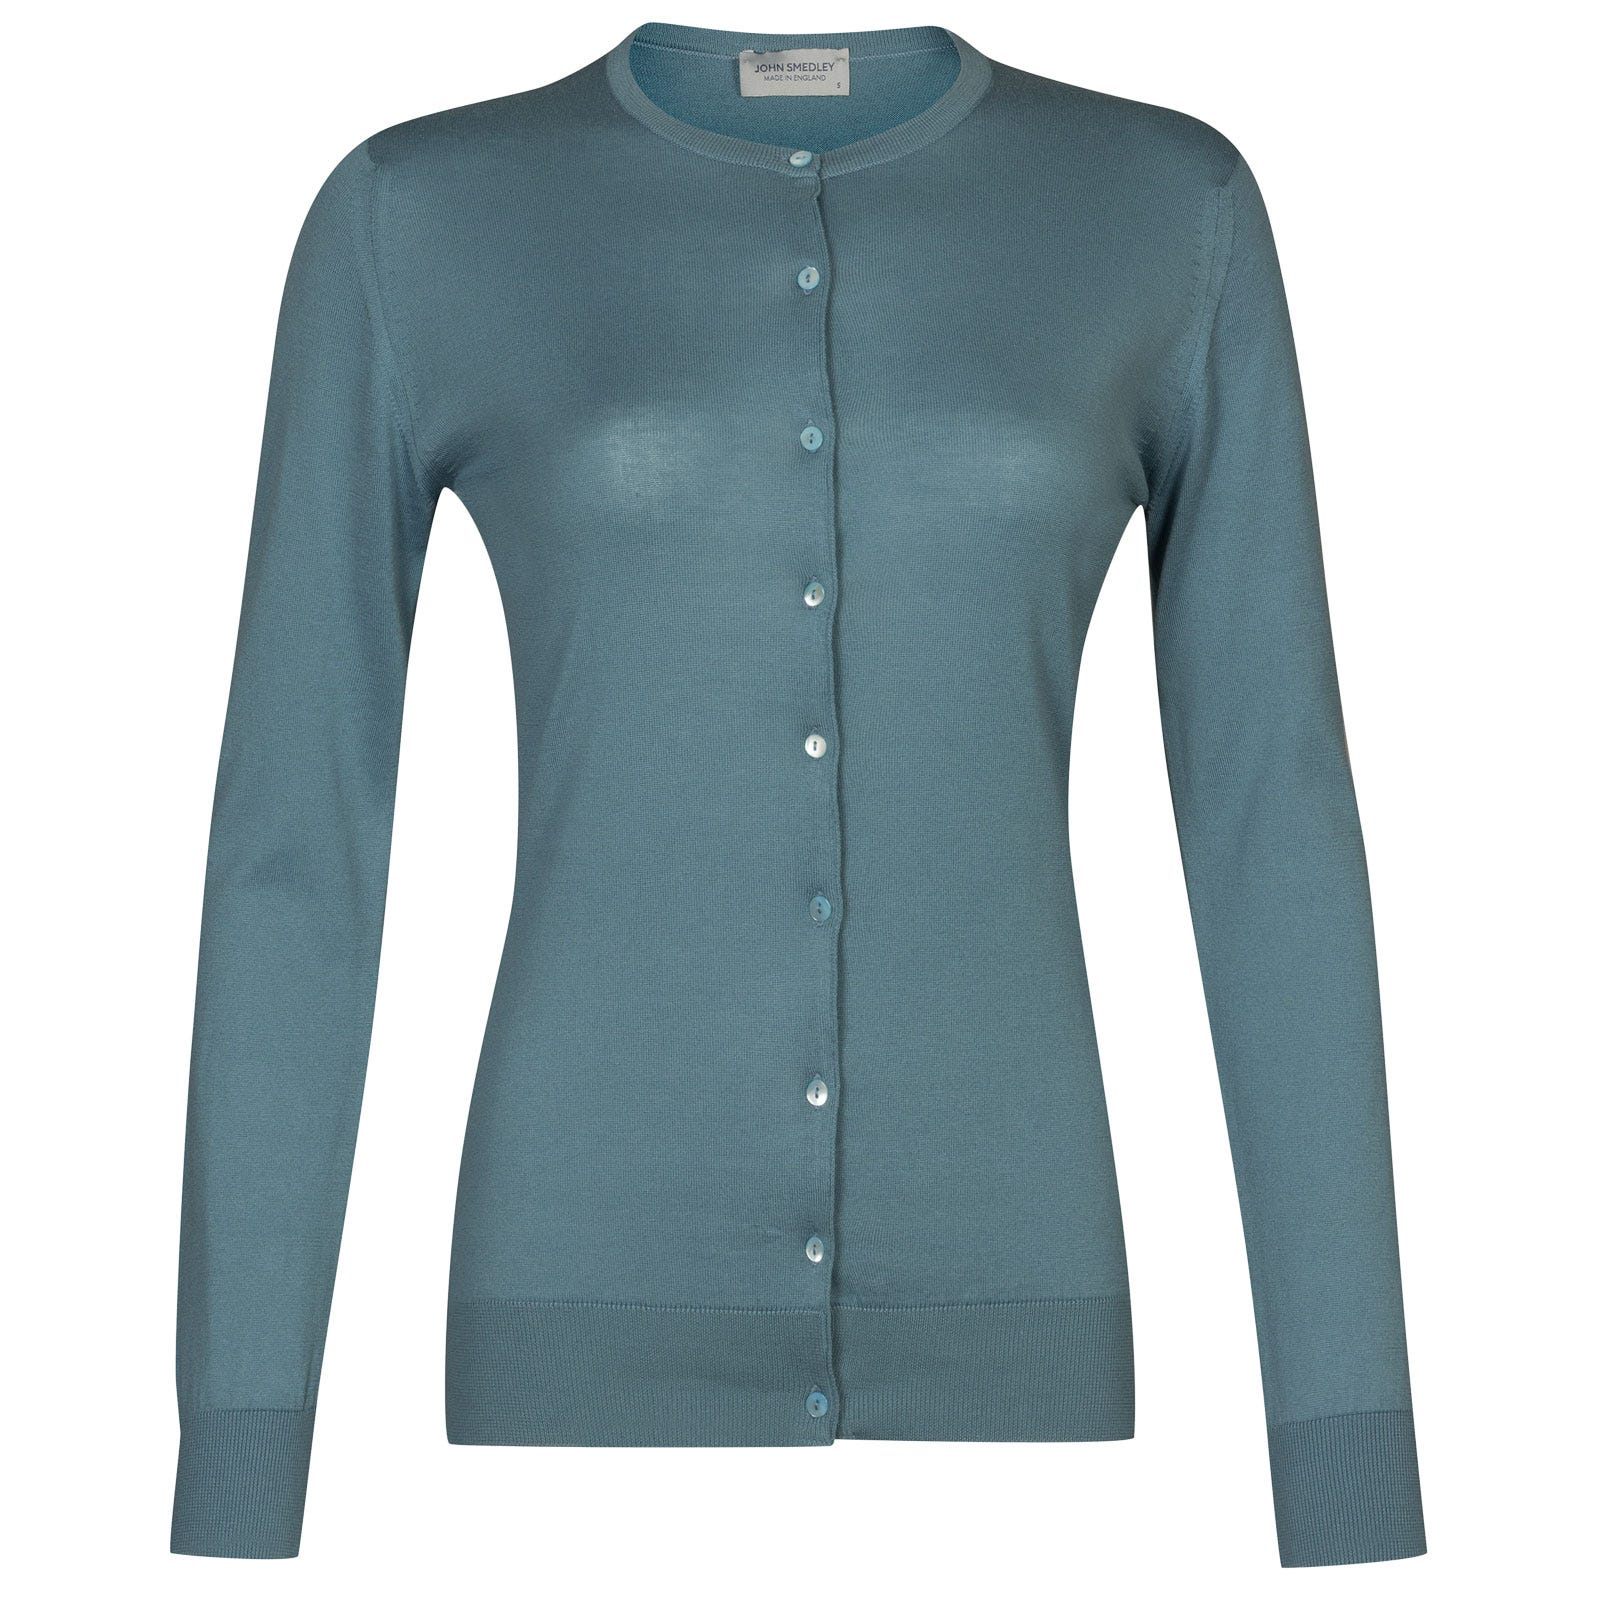 John Smedley Islington Sea Island Cotton Cardigan in Summit Blue-M